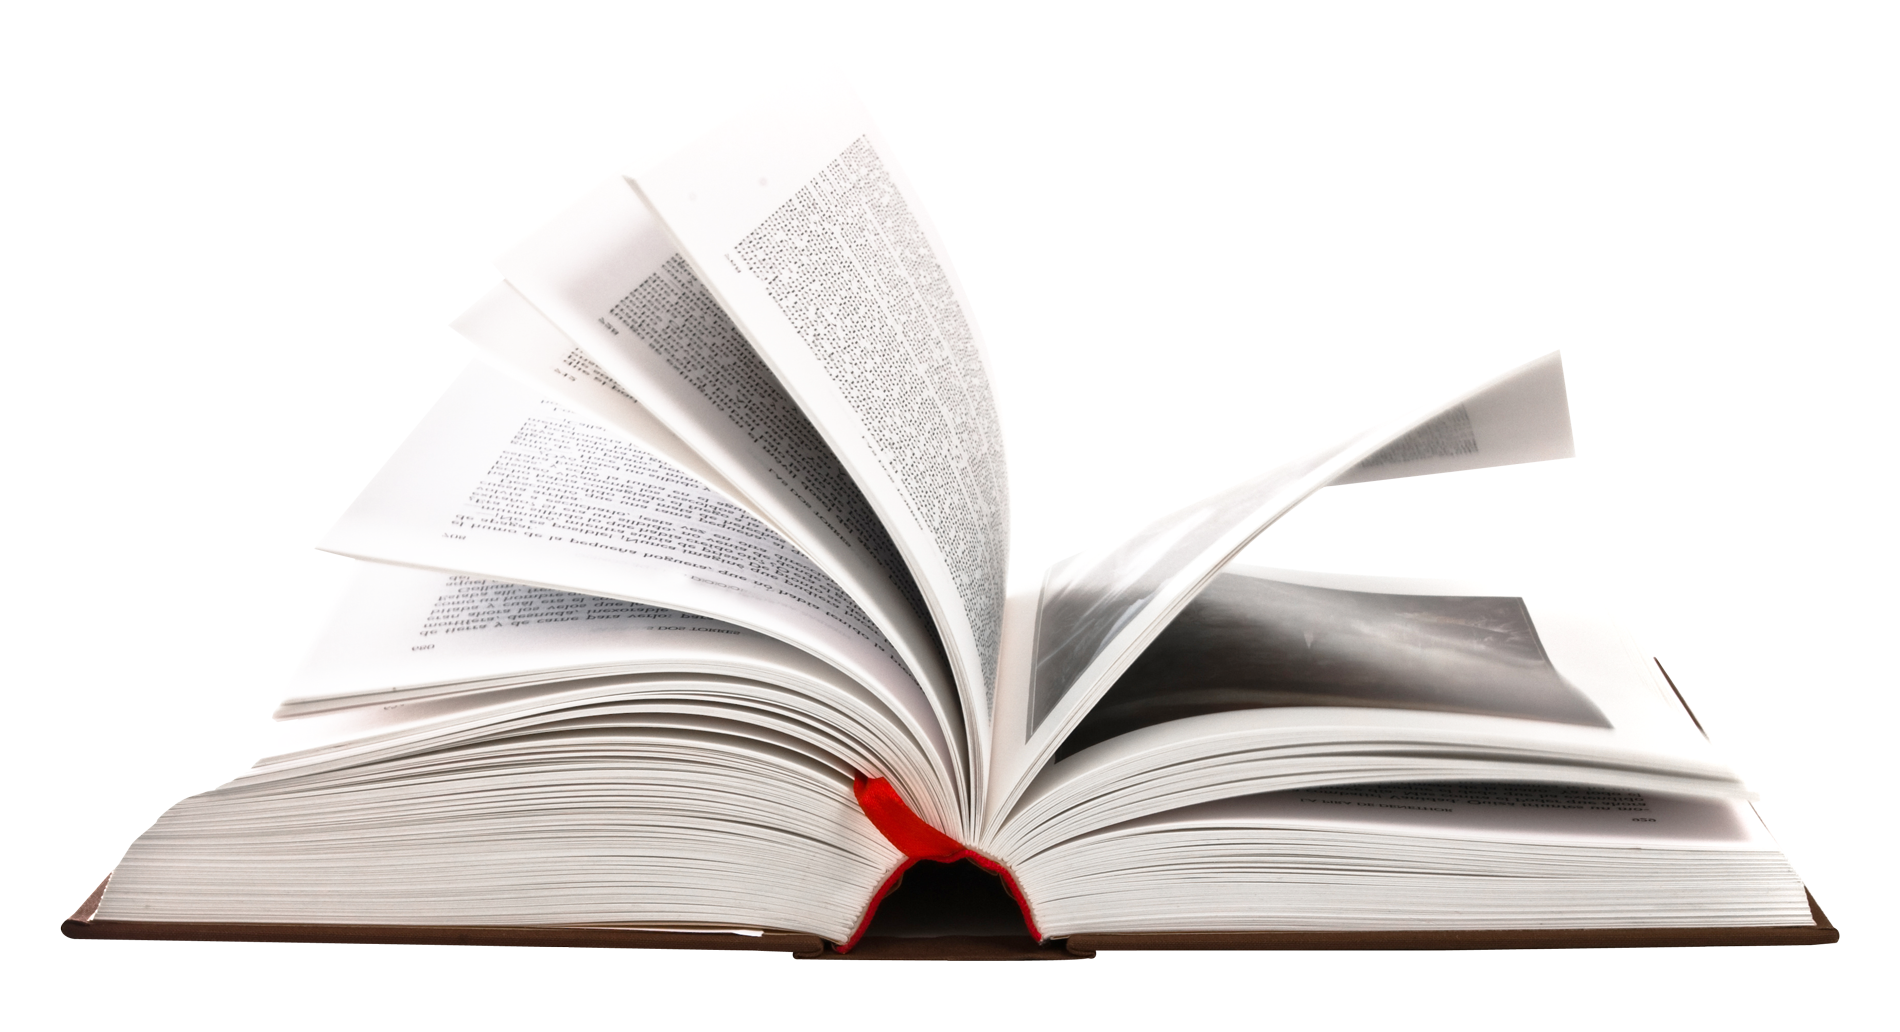 Open Book PNG Image - PurePNG | Free transparent CC0 PNG Image Library